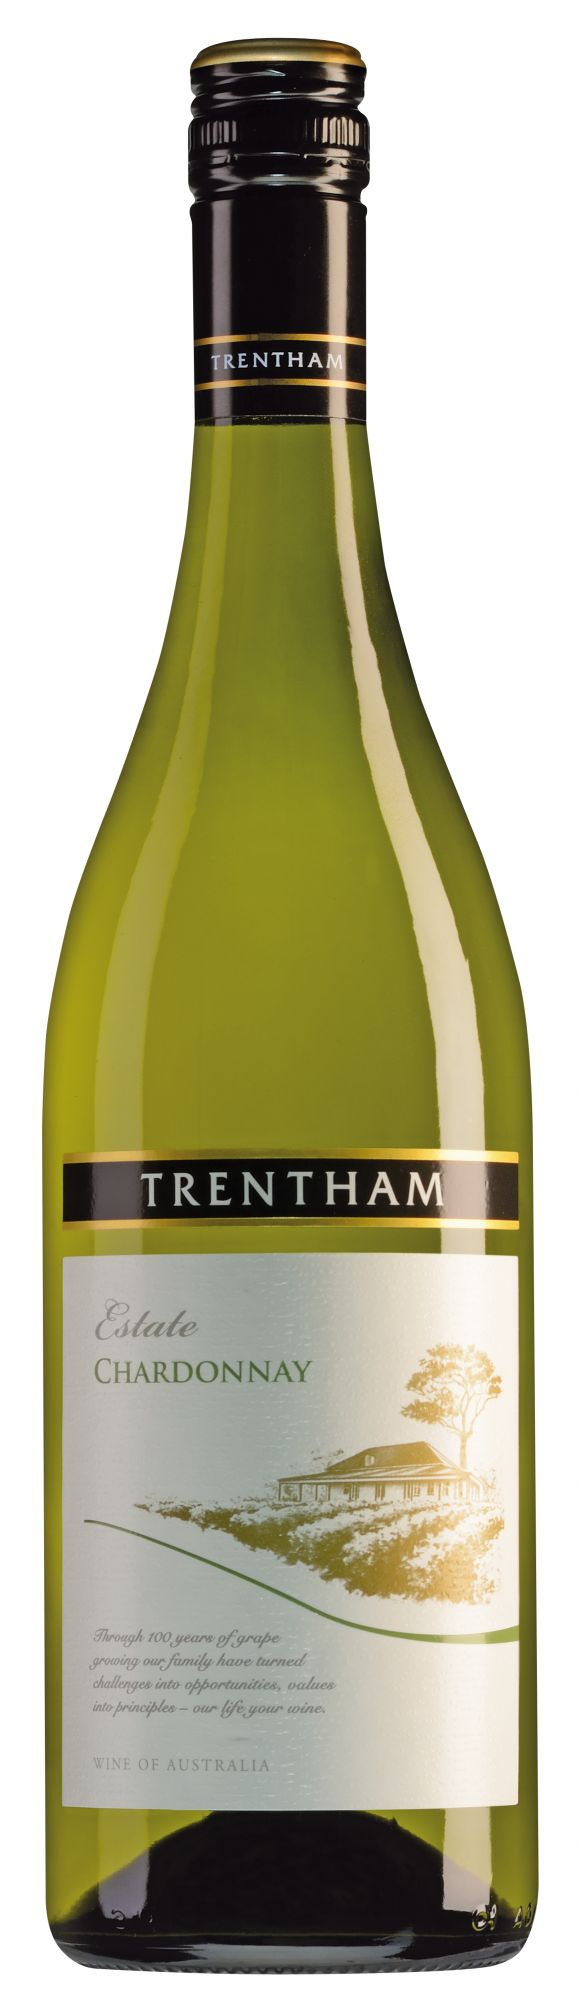 Trentham Estate Murray Darling Chardonnay